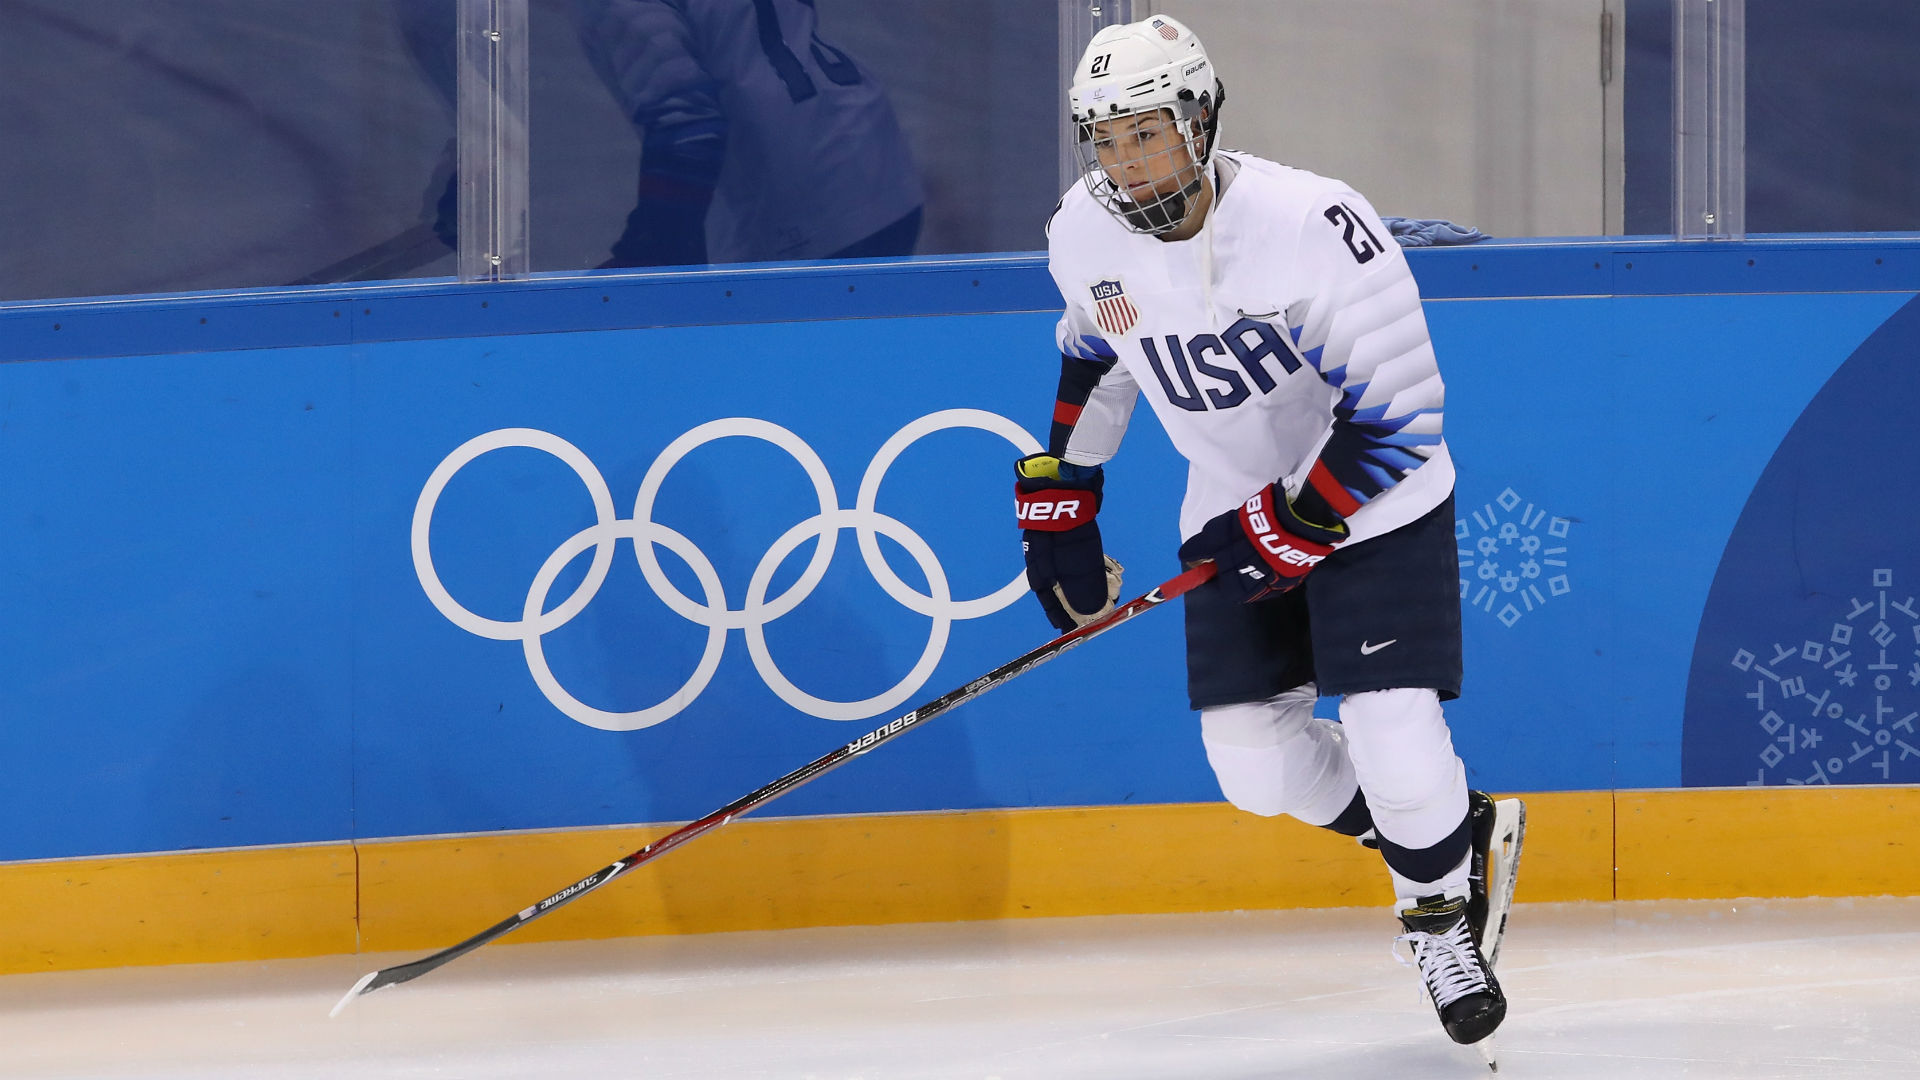 Olympics alert: Canada defeats USA  in women's hockey prelim